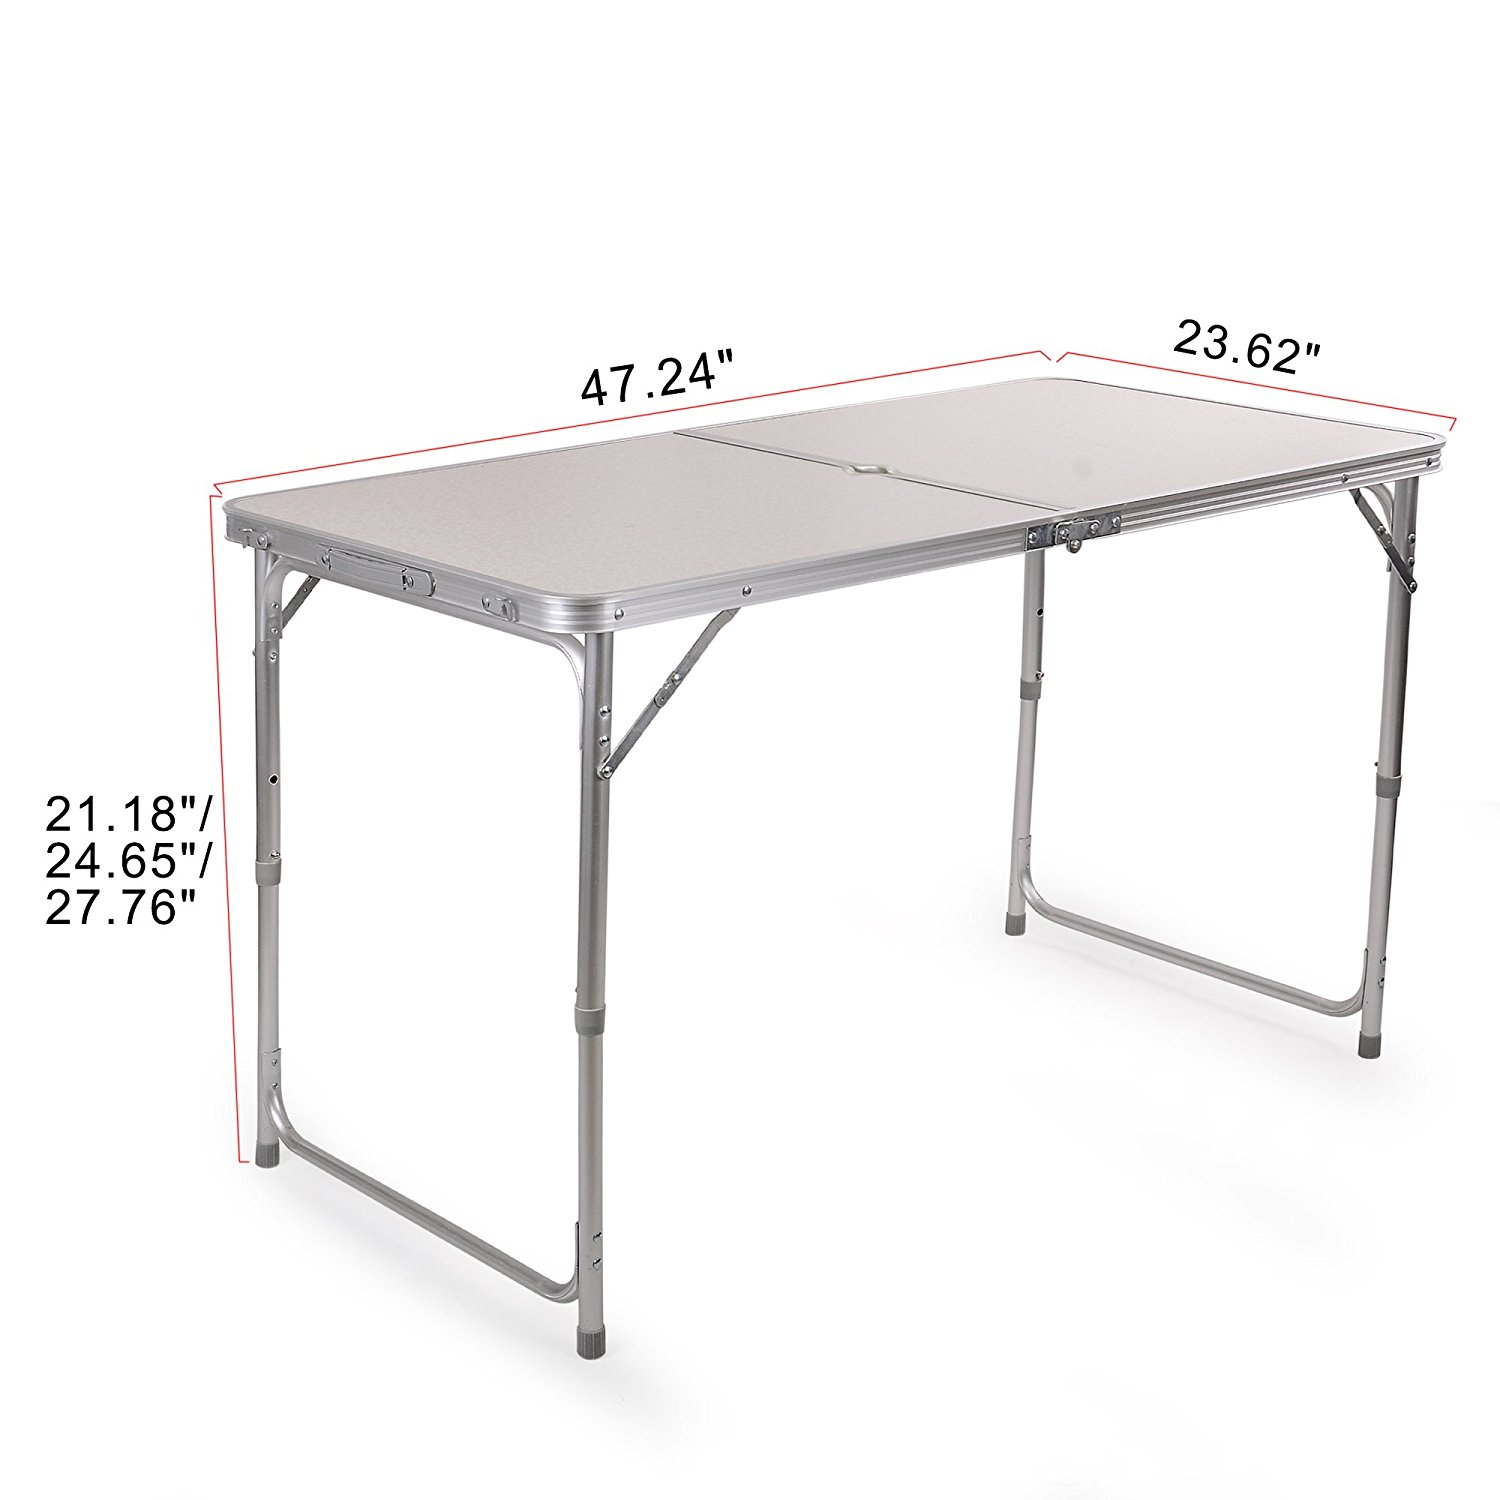 Portable Height Adjustable Aluminum Folding Camping Table Ft Acft1 1